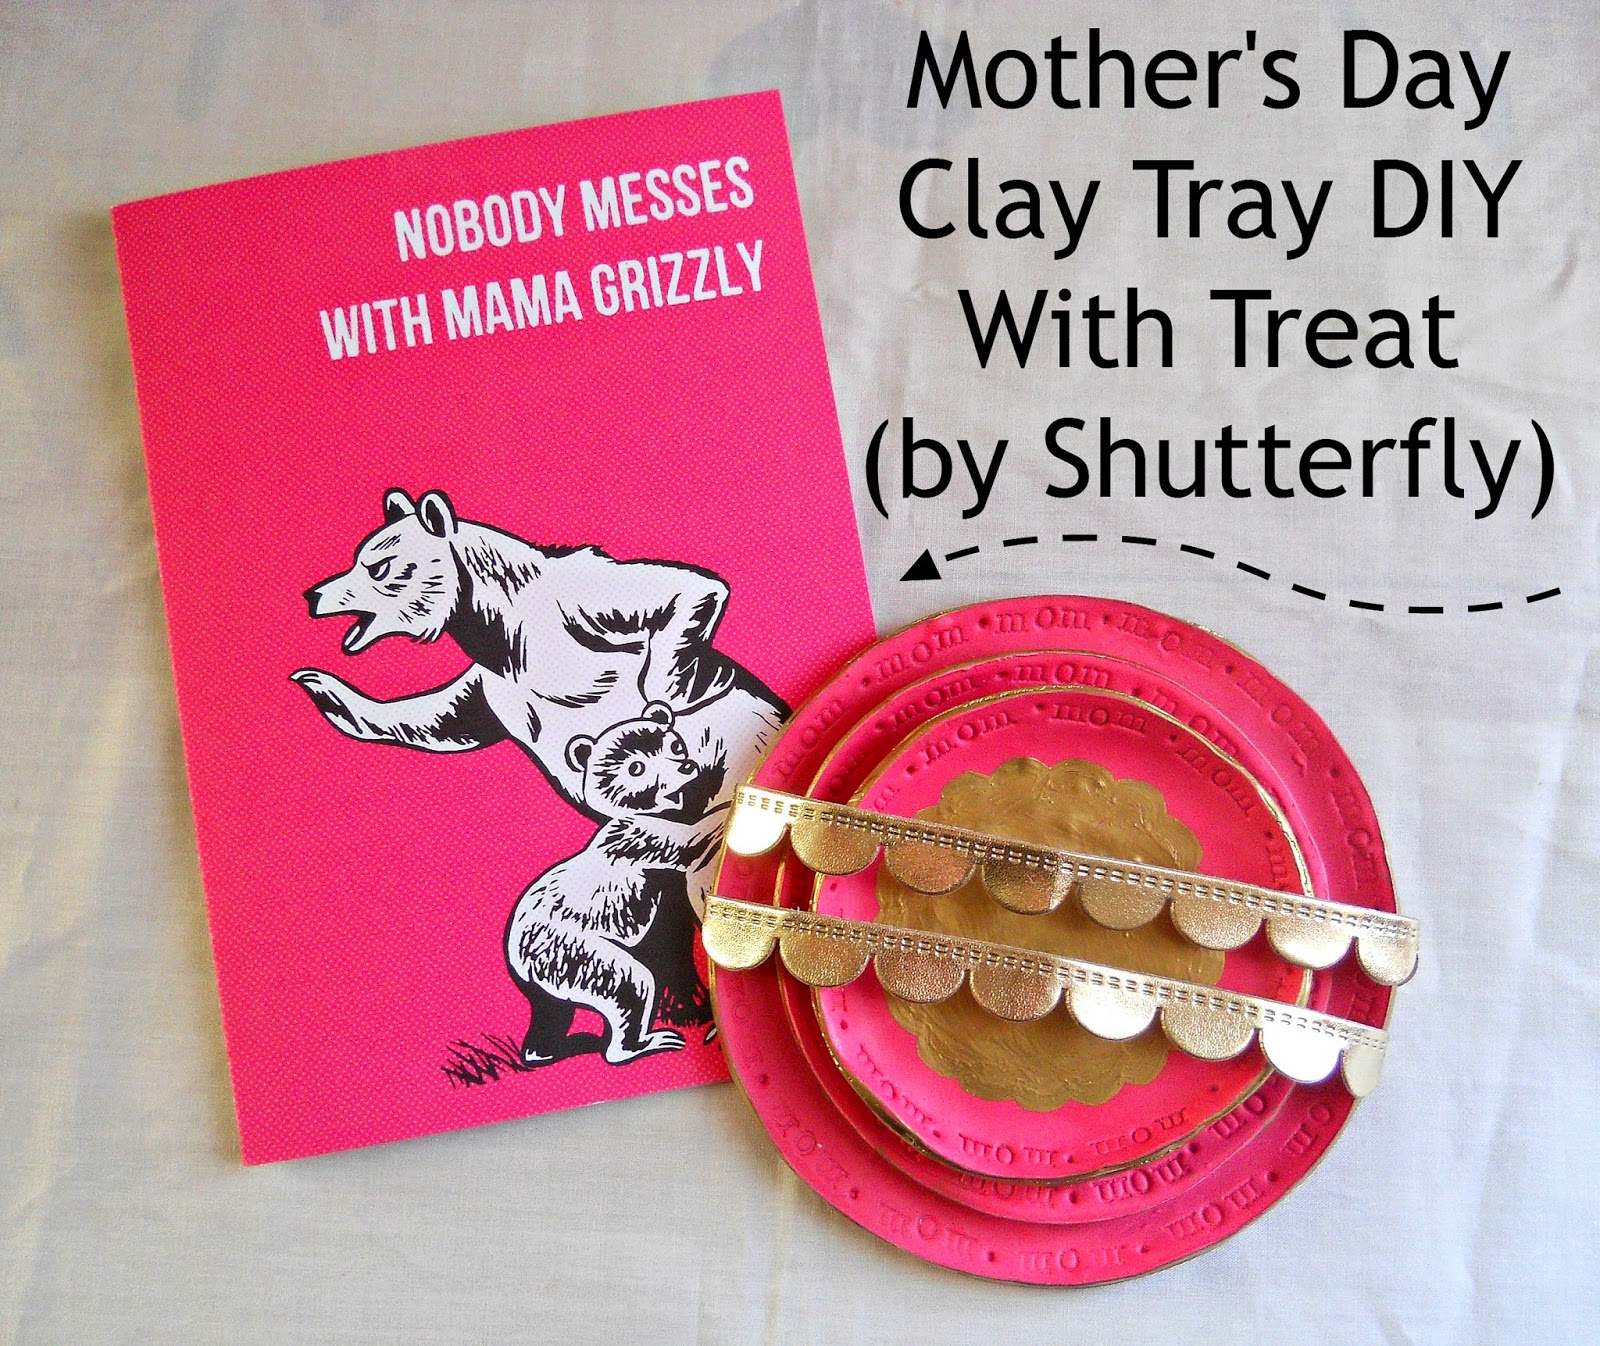 Running With A Glue Gun Mothers Day Clay Tray Diy With Treat